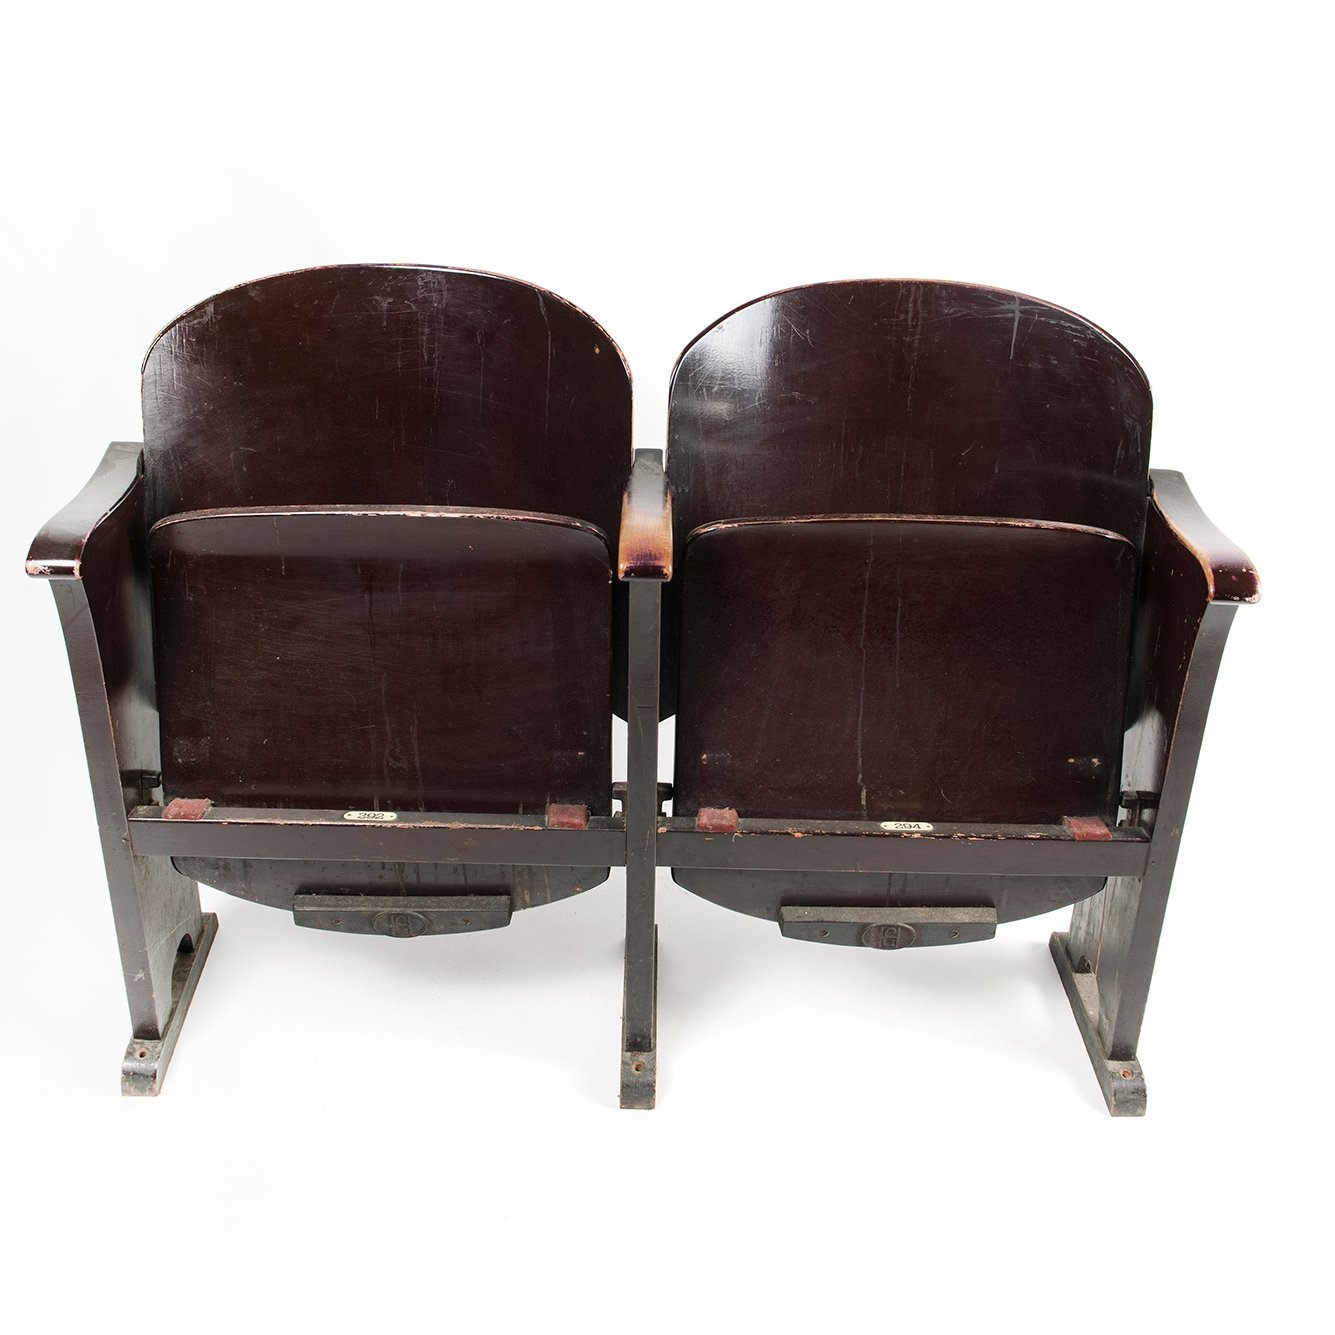 Movie Theatre Chairs 1950s 126252